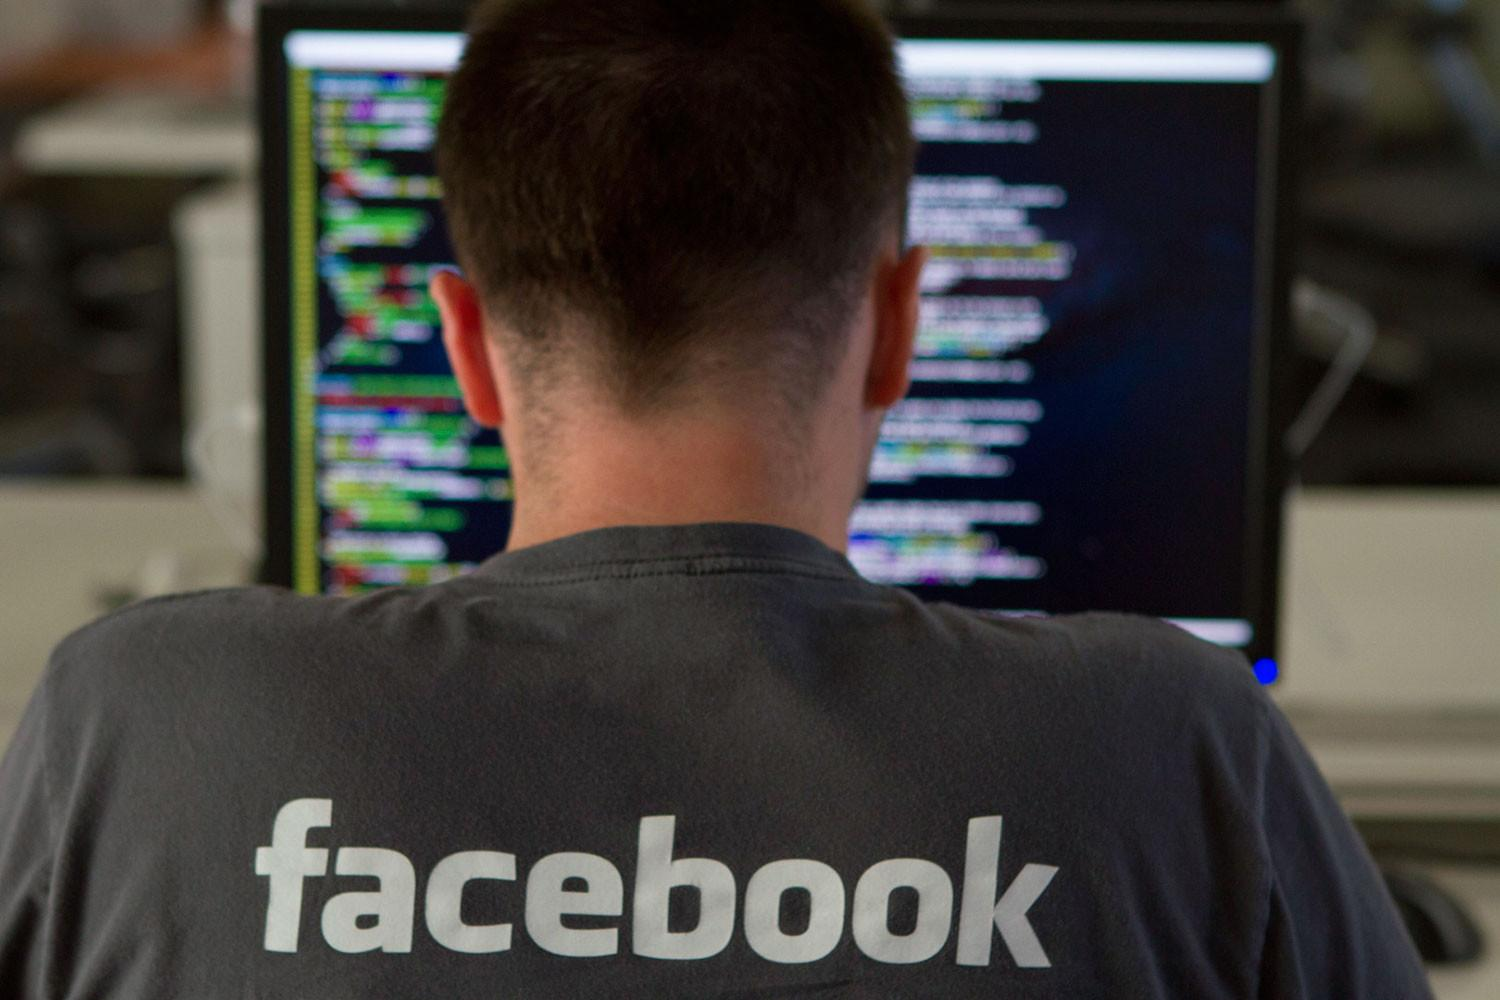 Facebook admits to blocking links to Wikileaks DNC emails